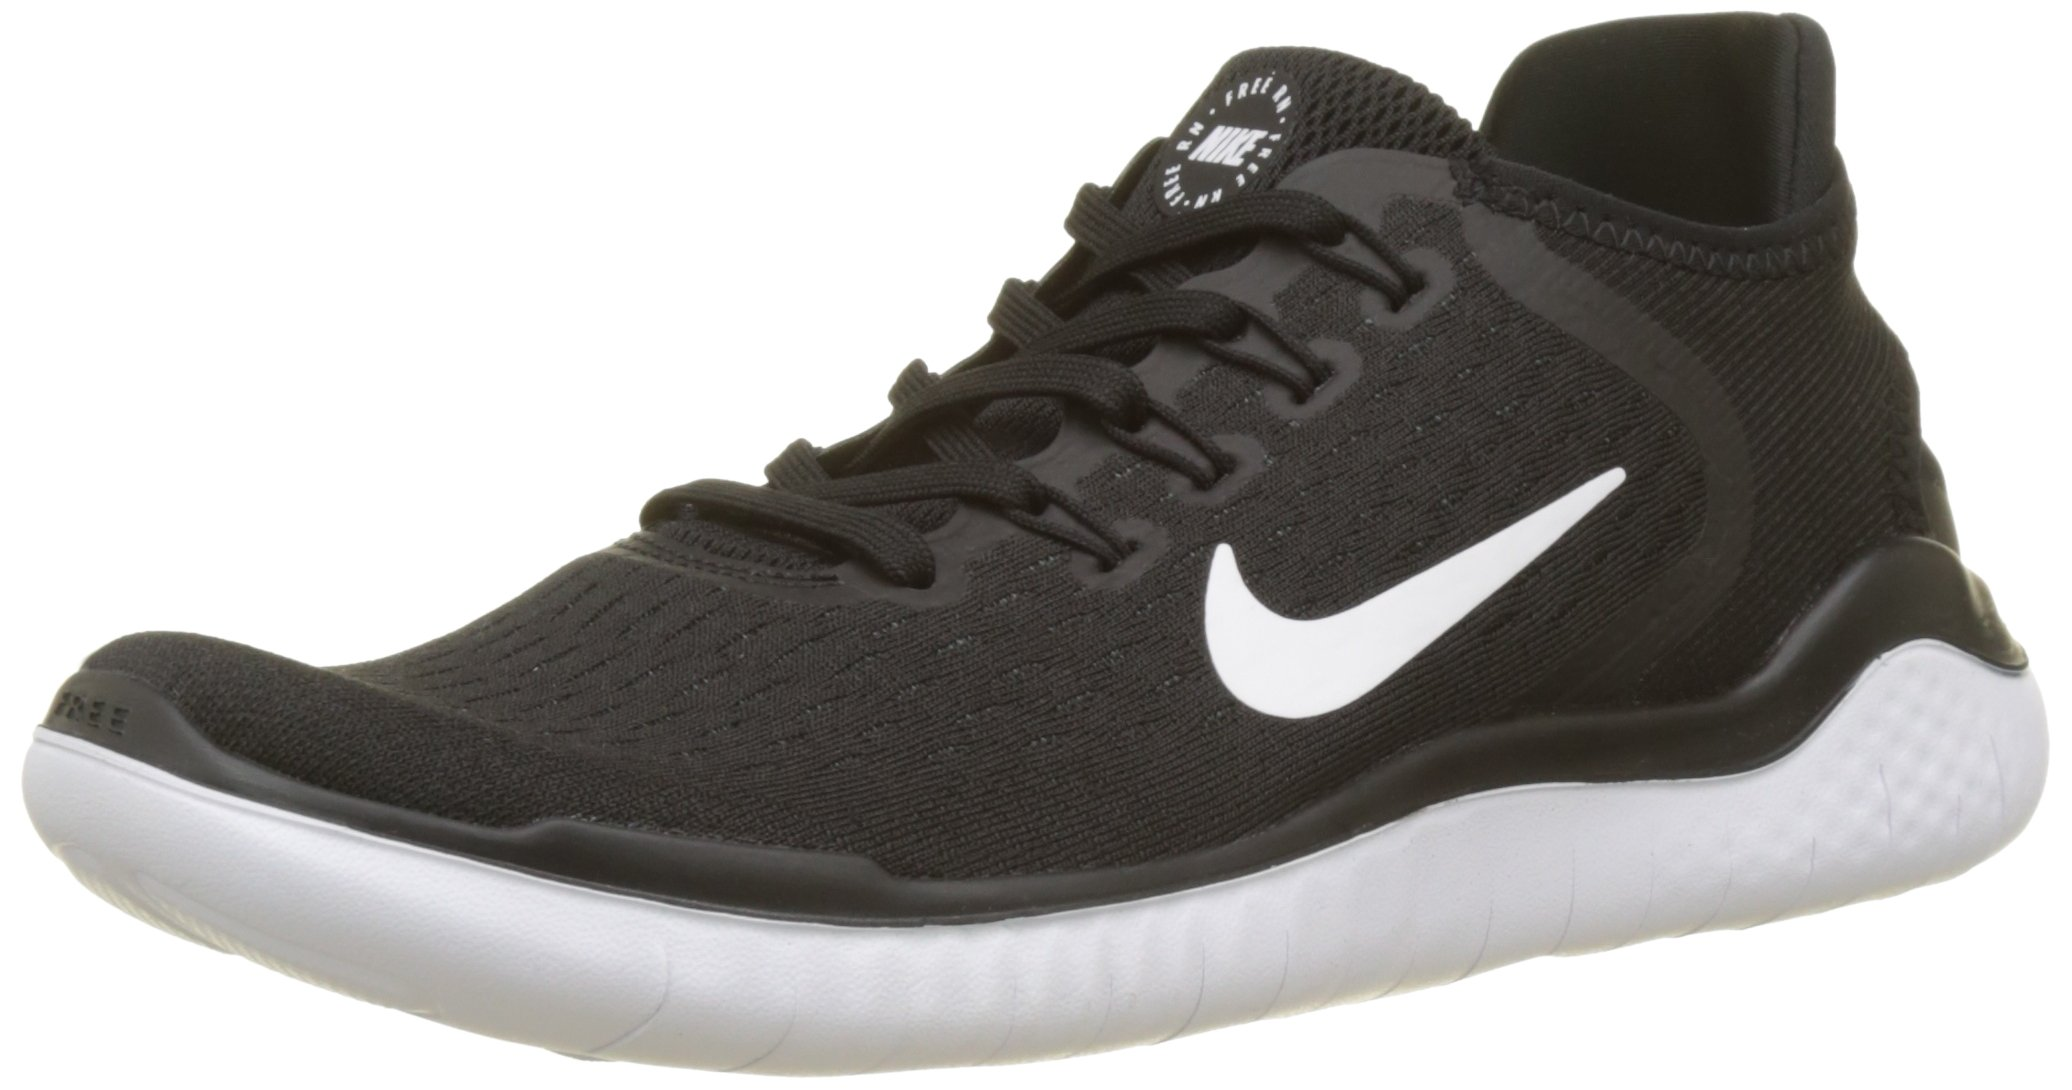 Nike Men's Free RN 2018 Running Shoe Black/White Size 7.5 M US